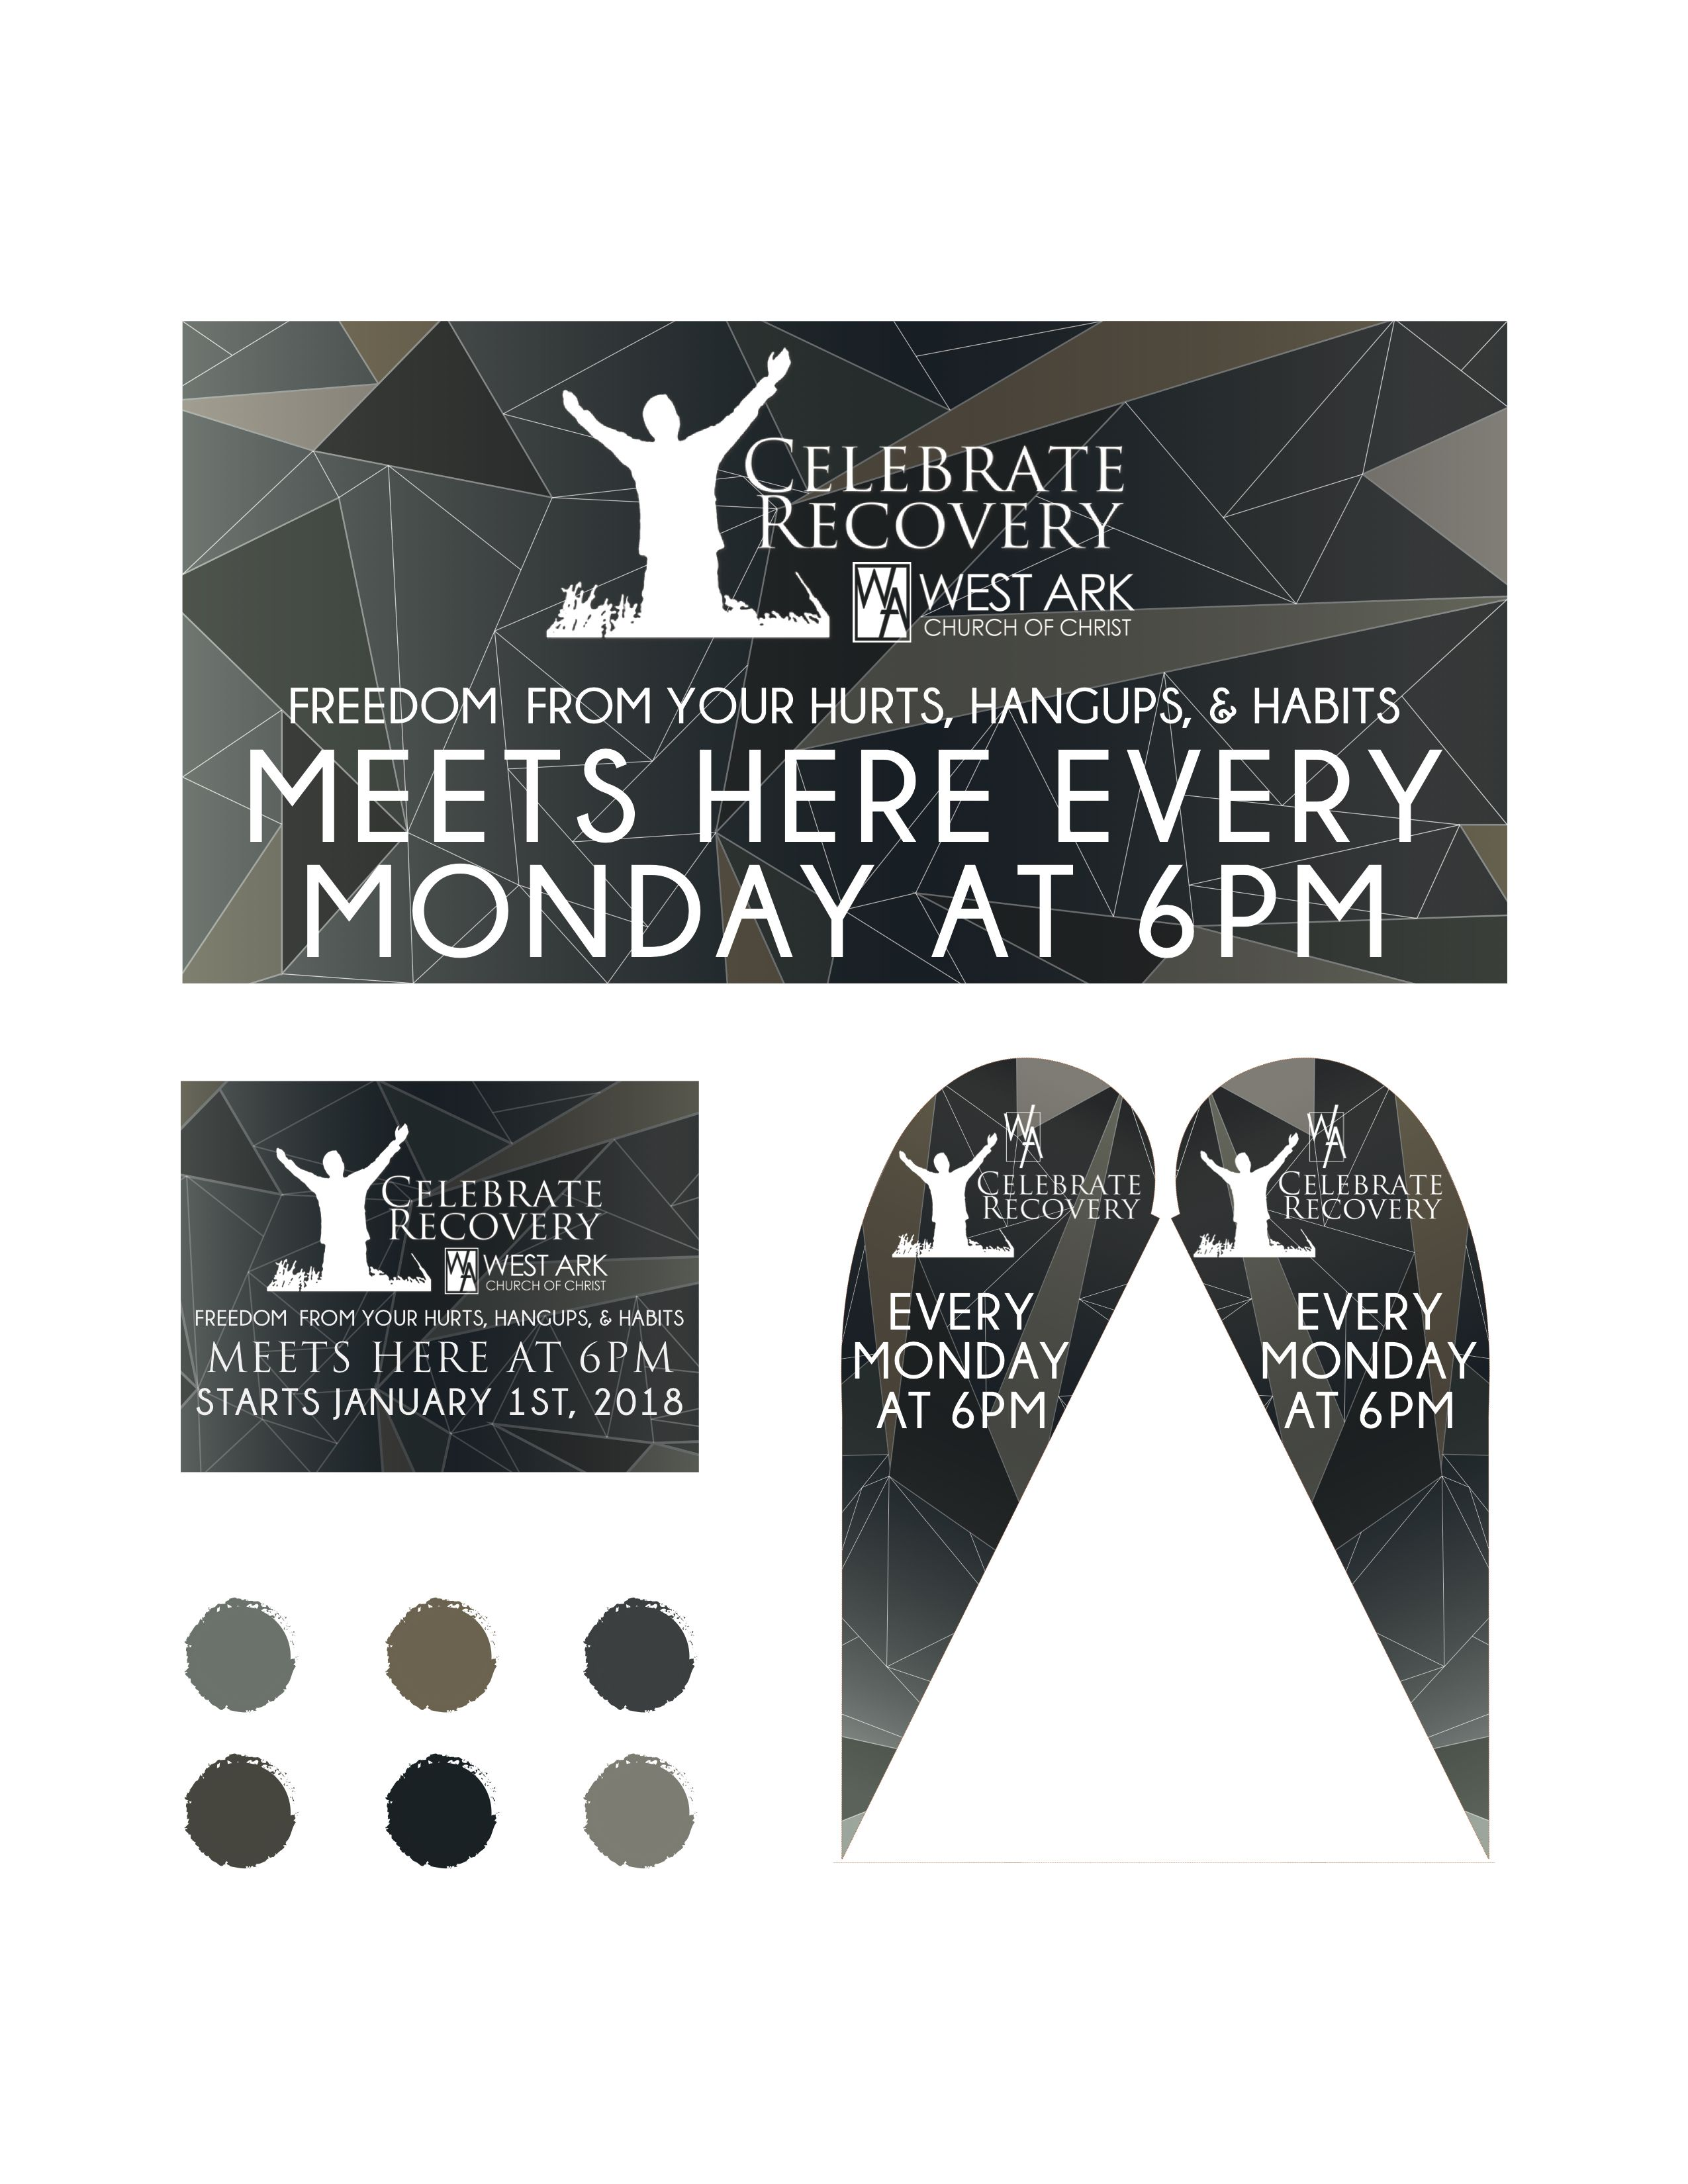 Consistent Design For Celebrate Recovery In Fort Smith Ar Graphicdesign Celebraterecover Bannerdesign Poster Sign Design Banner Design Celebrate Recovery